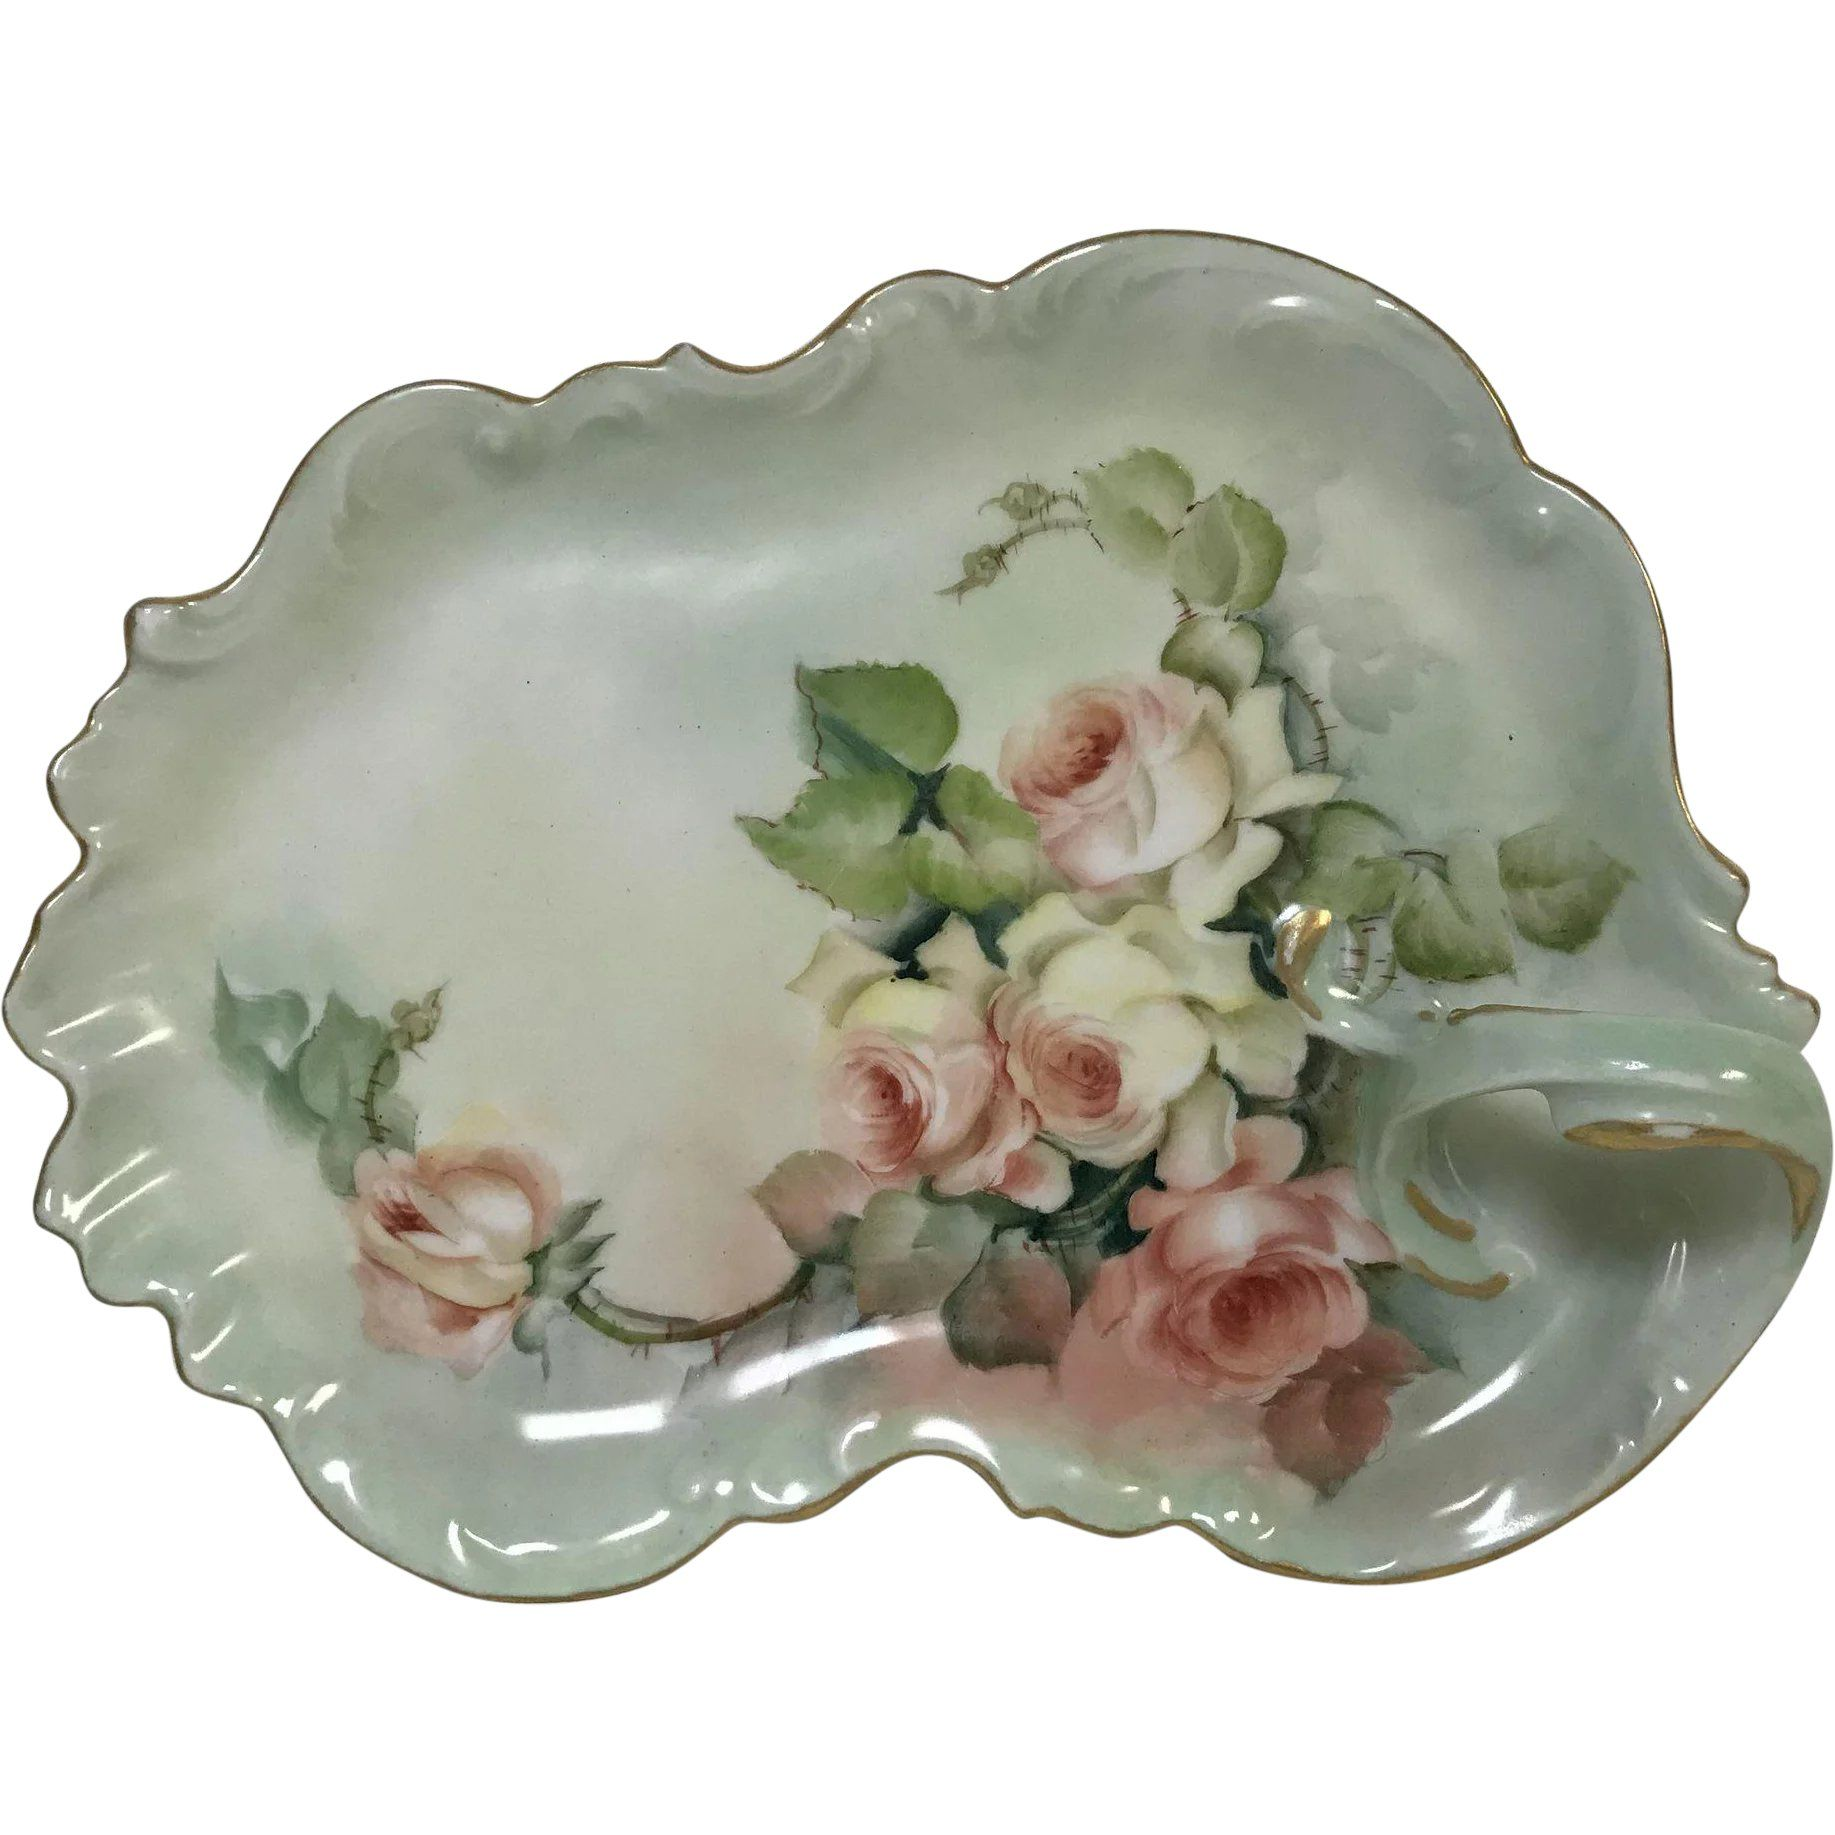 Limoges porcelain leaf shaped vanity tray with gold rim and hand